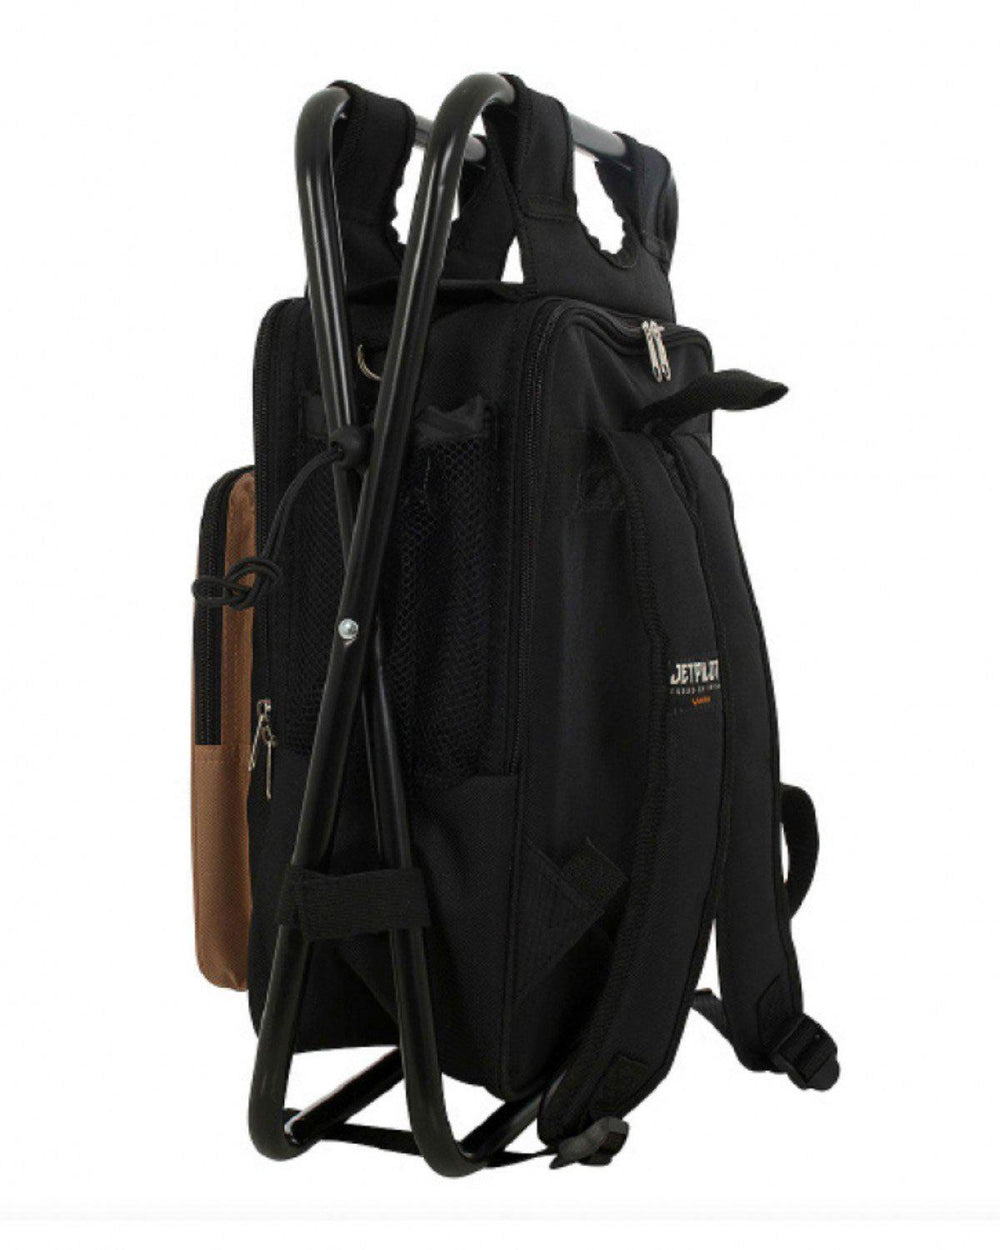 Jetpilot Chilled Seat Bag-Skiforce Australia